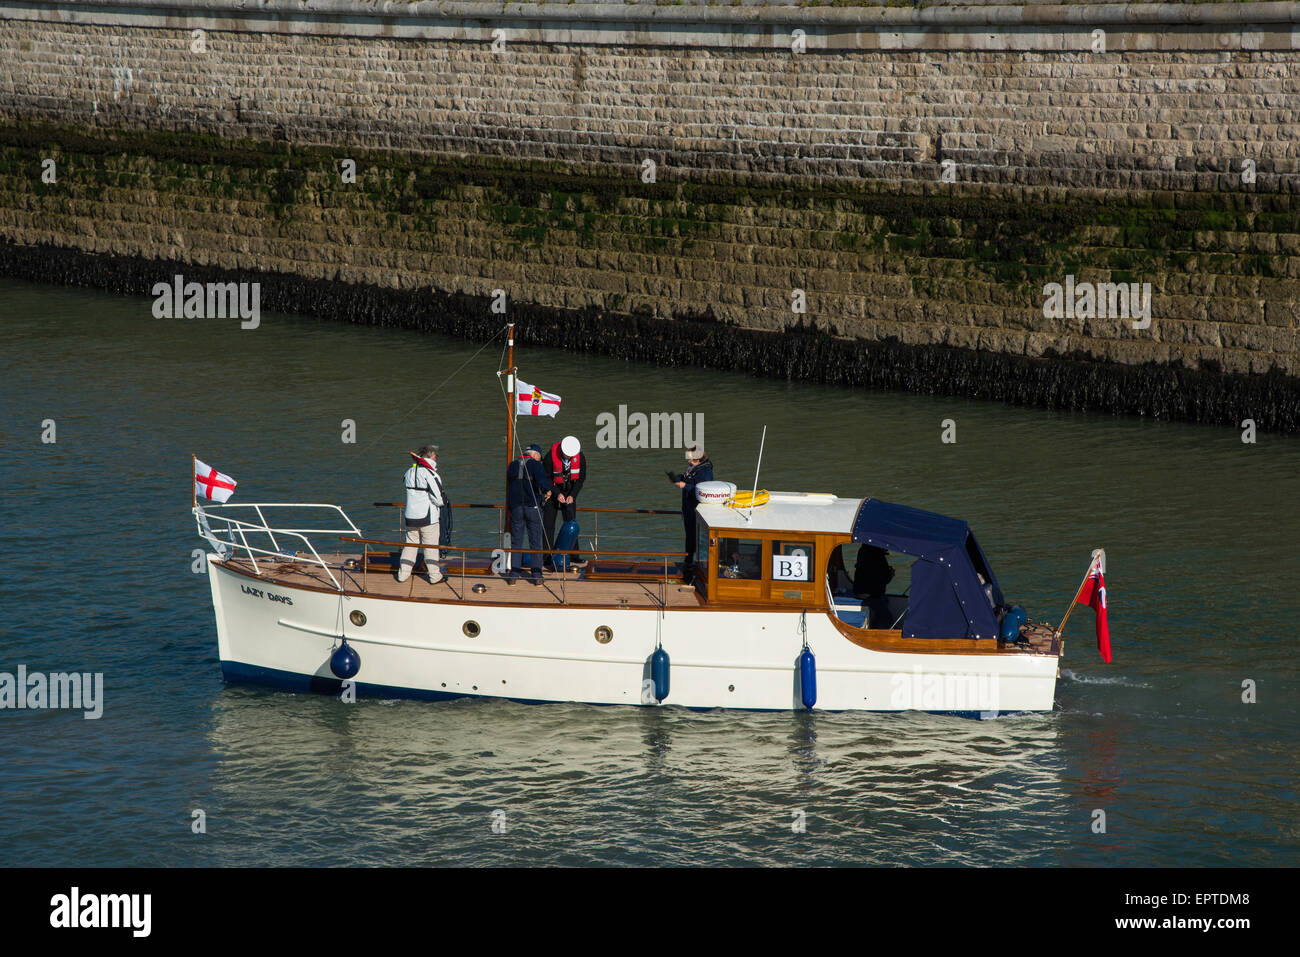 Ramsgate, Kent 21 May 2015. Motor Yacht and Dunkirk veteran, Lazy Days leaving Ramsgate Royal Harbour for Dunkirk. - Stock Image